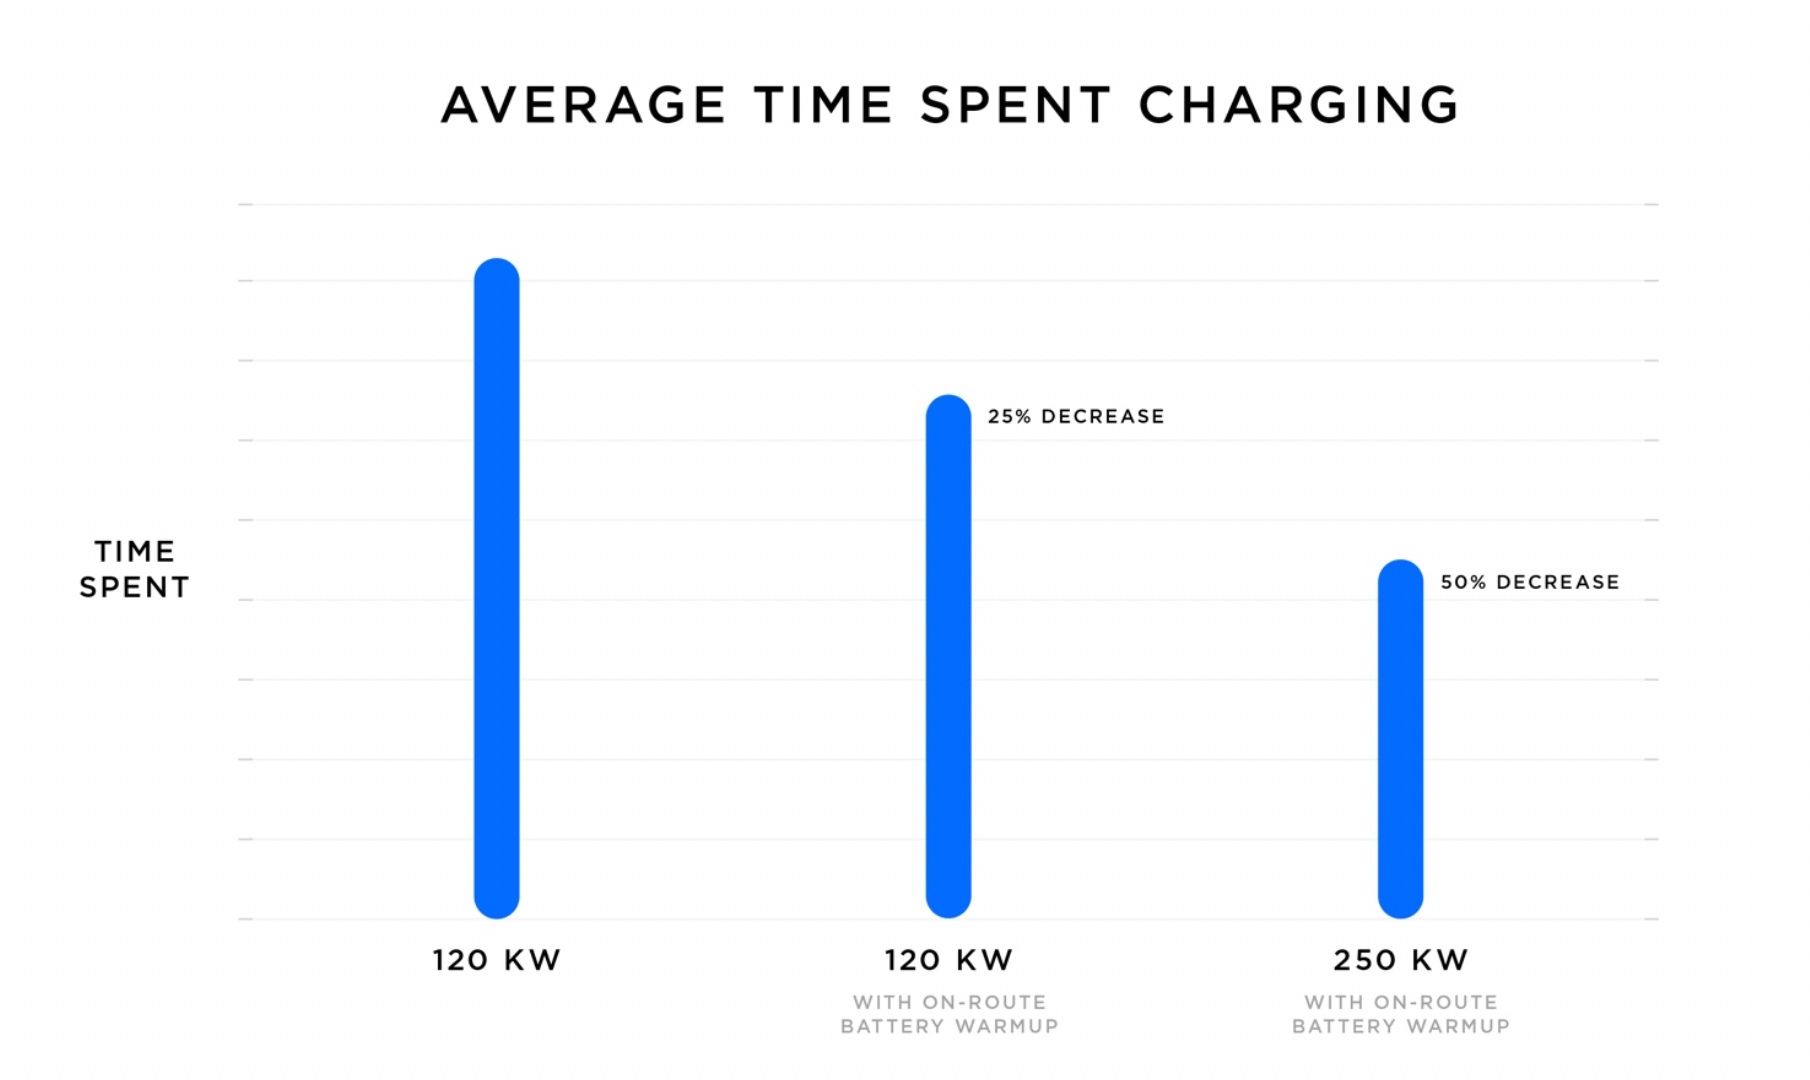 Average time spent charging with on-route warm-up for V2 and V3 Supercharging (Source: Tesla)